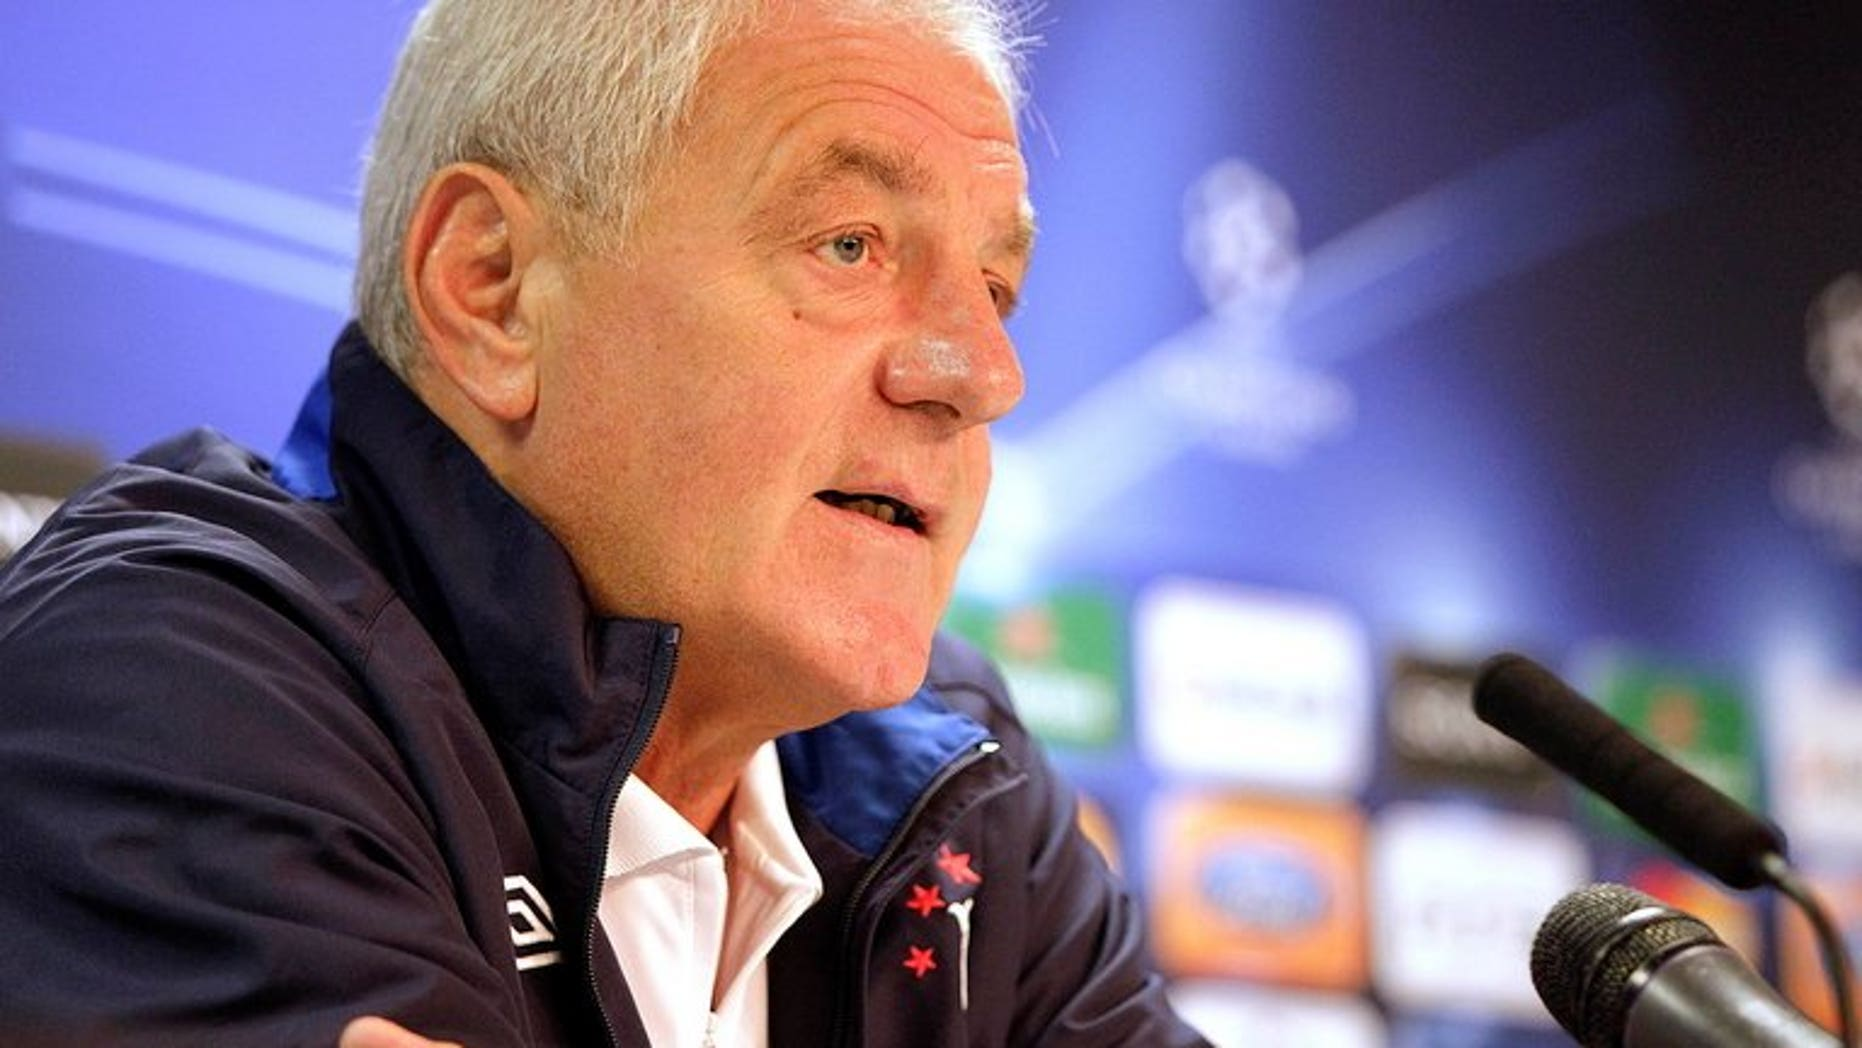 Walter Smith speaks during a press conference at Ibrox Stadium, Glasgow, Scotland, on September 28, 2010. Smith resigned on Monday as chairman of fallen Scottish giants Rangers in the midst of a power struggle at Ibrox.